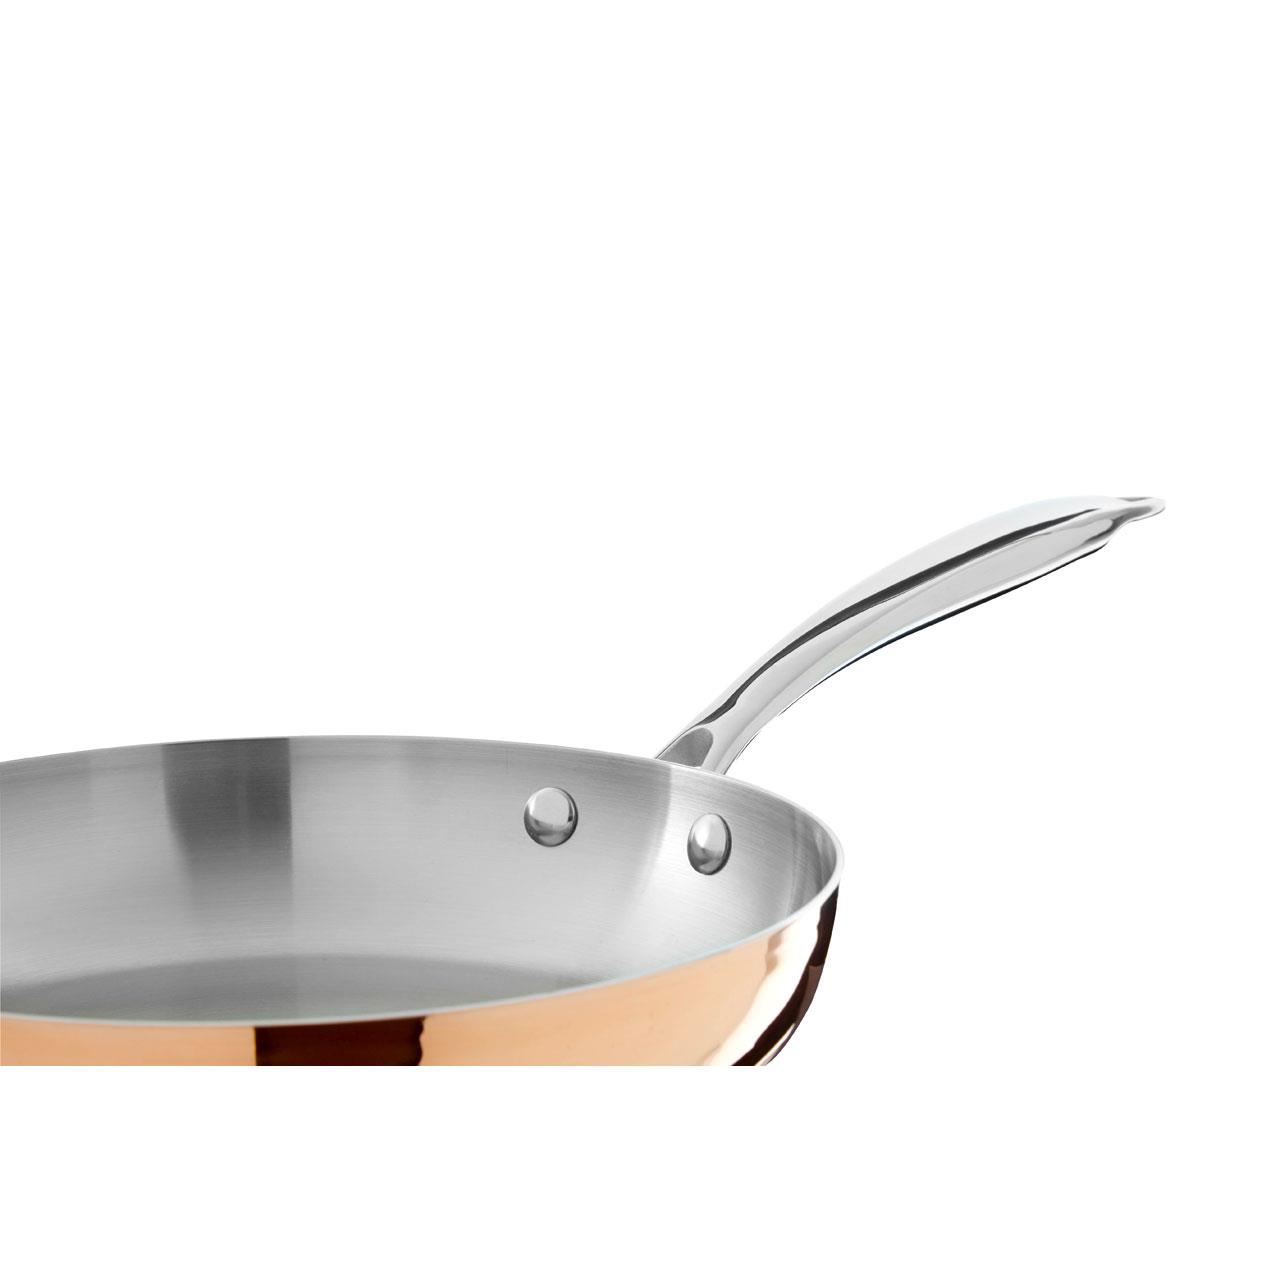 Stainless Steel Handle Copper // Tri Ply Big Living Minerva 28cm Frying Pan